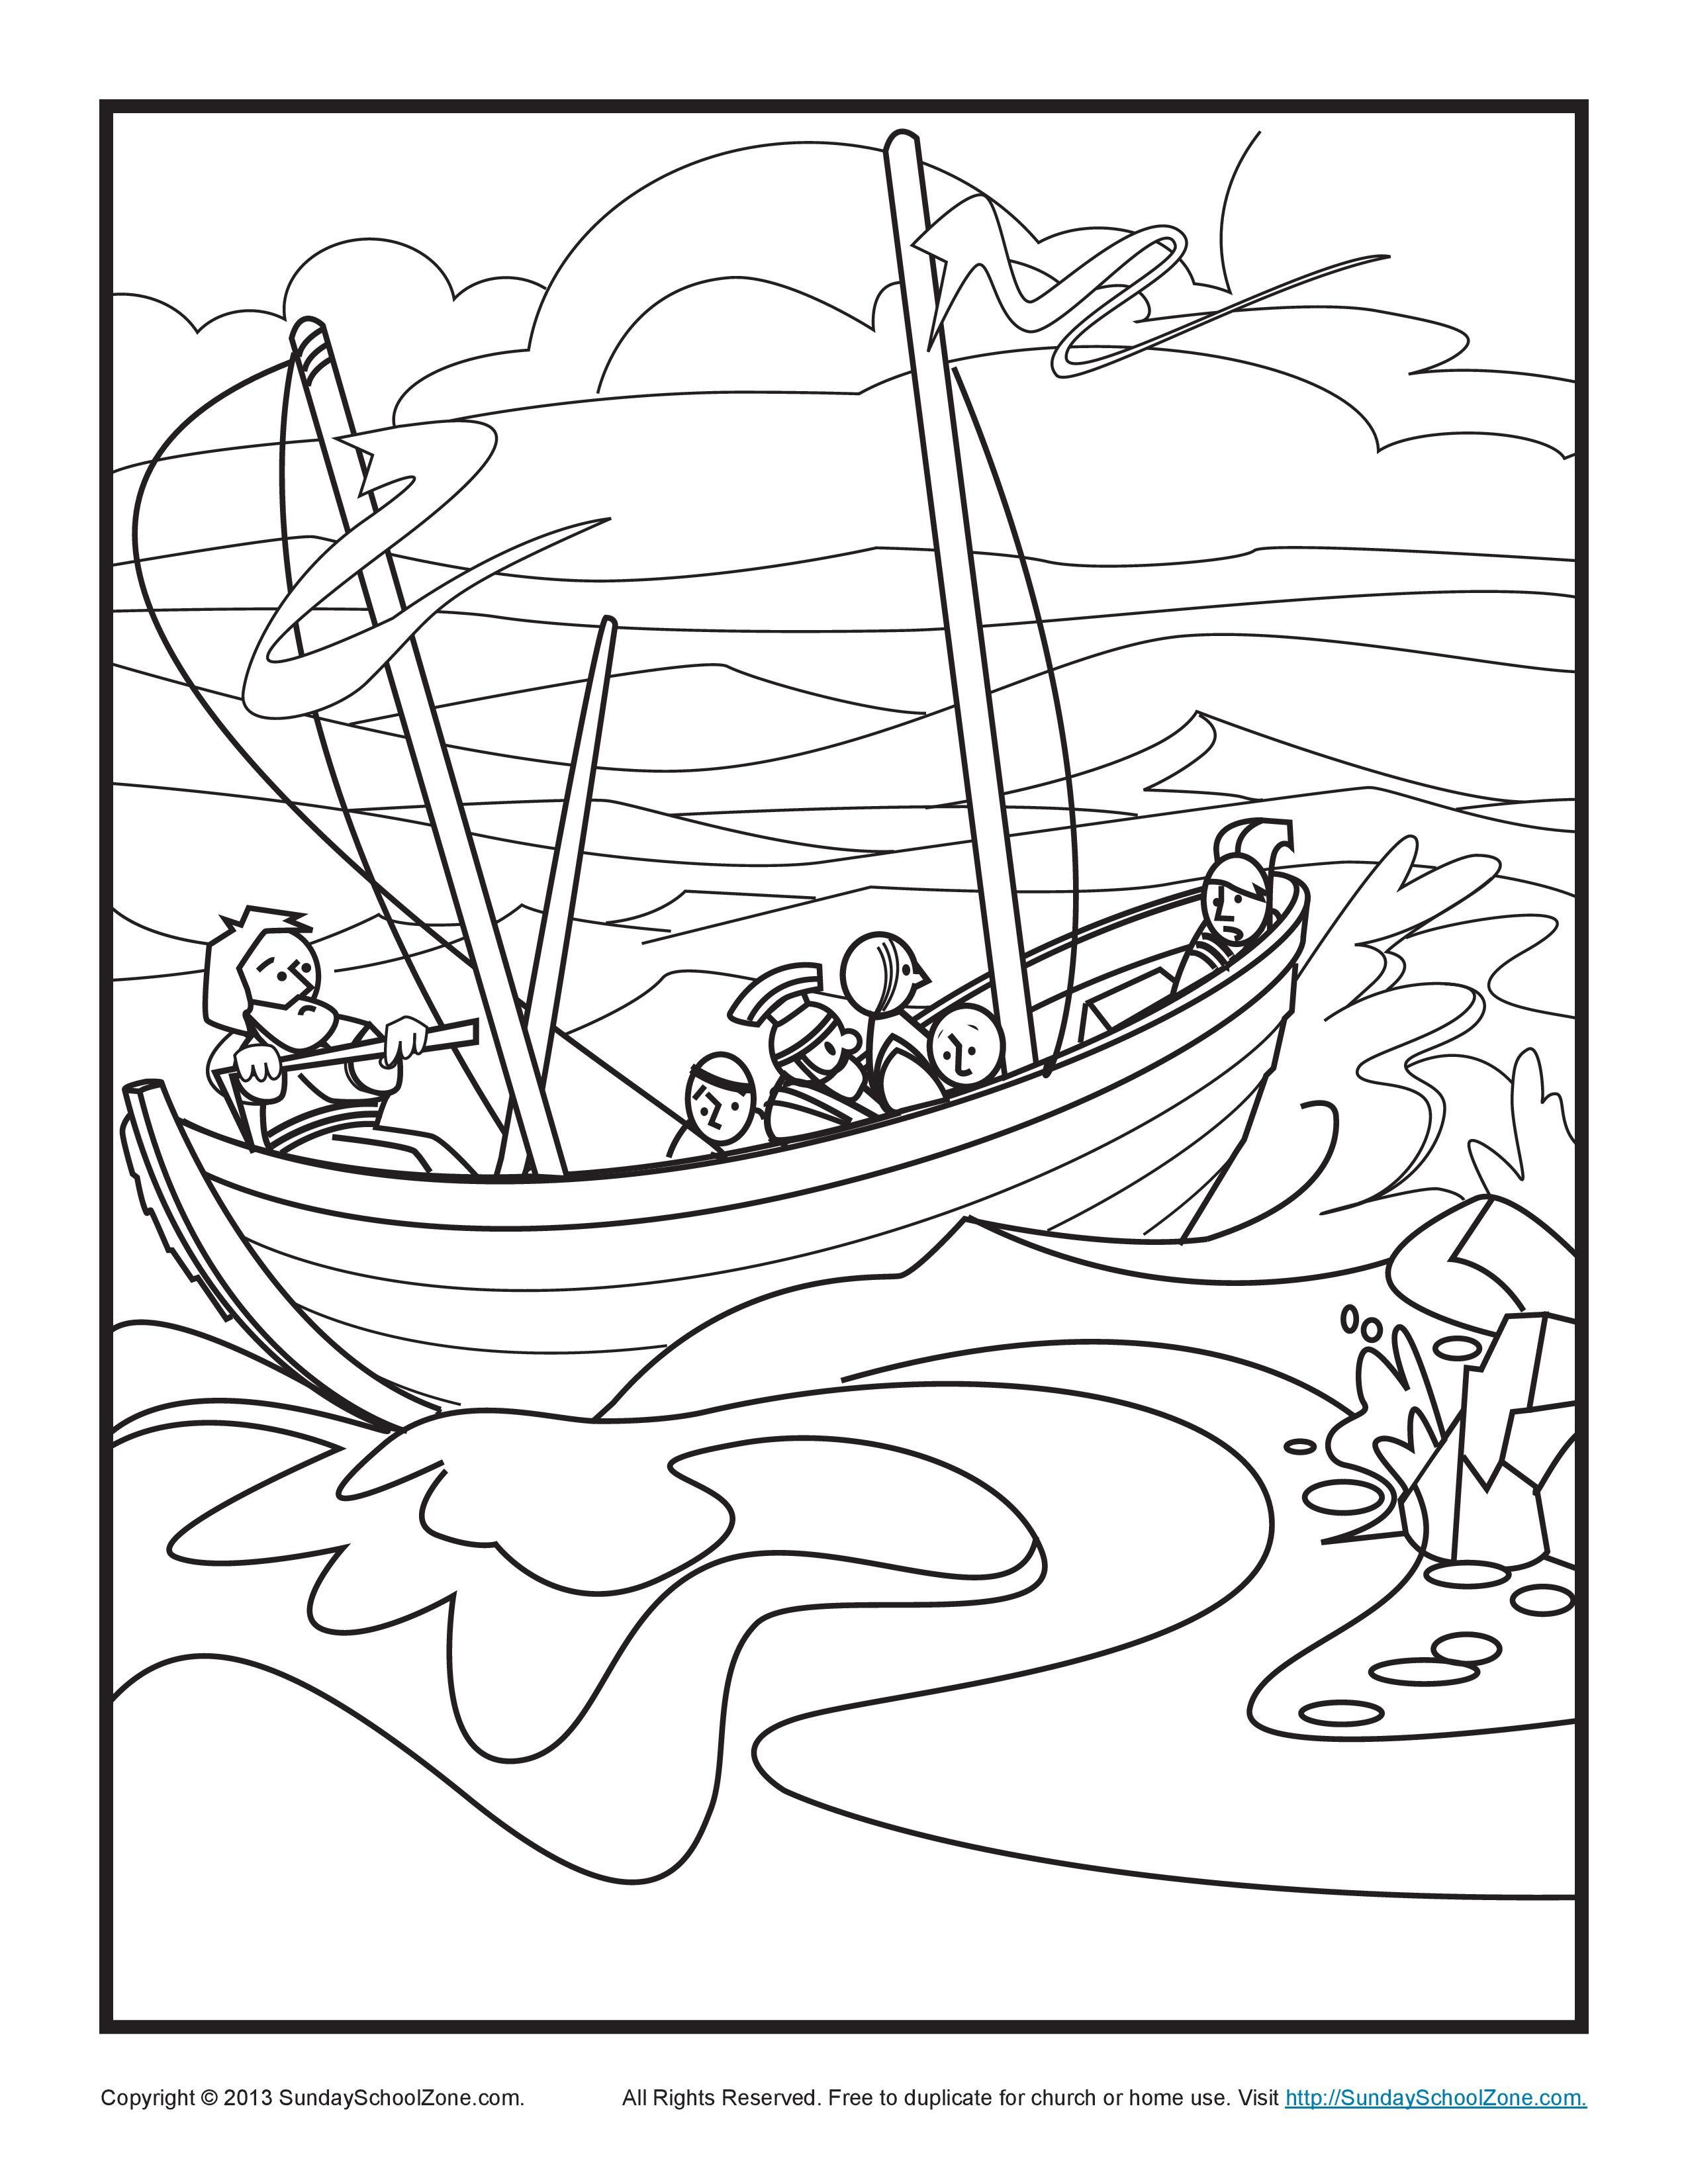 Bible Coloring Pages | Sunday School | Bible Coloring Pages